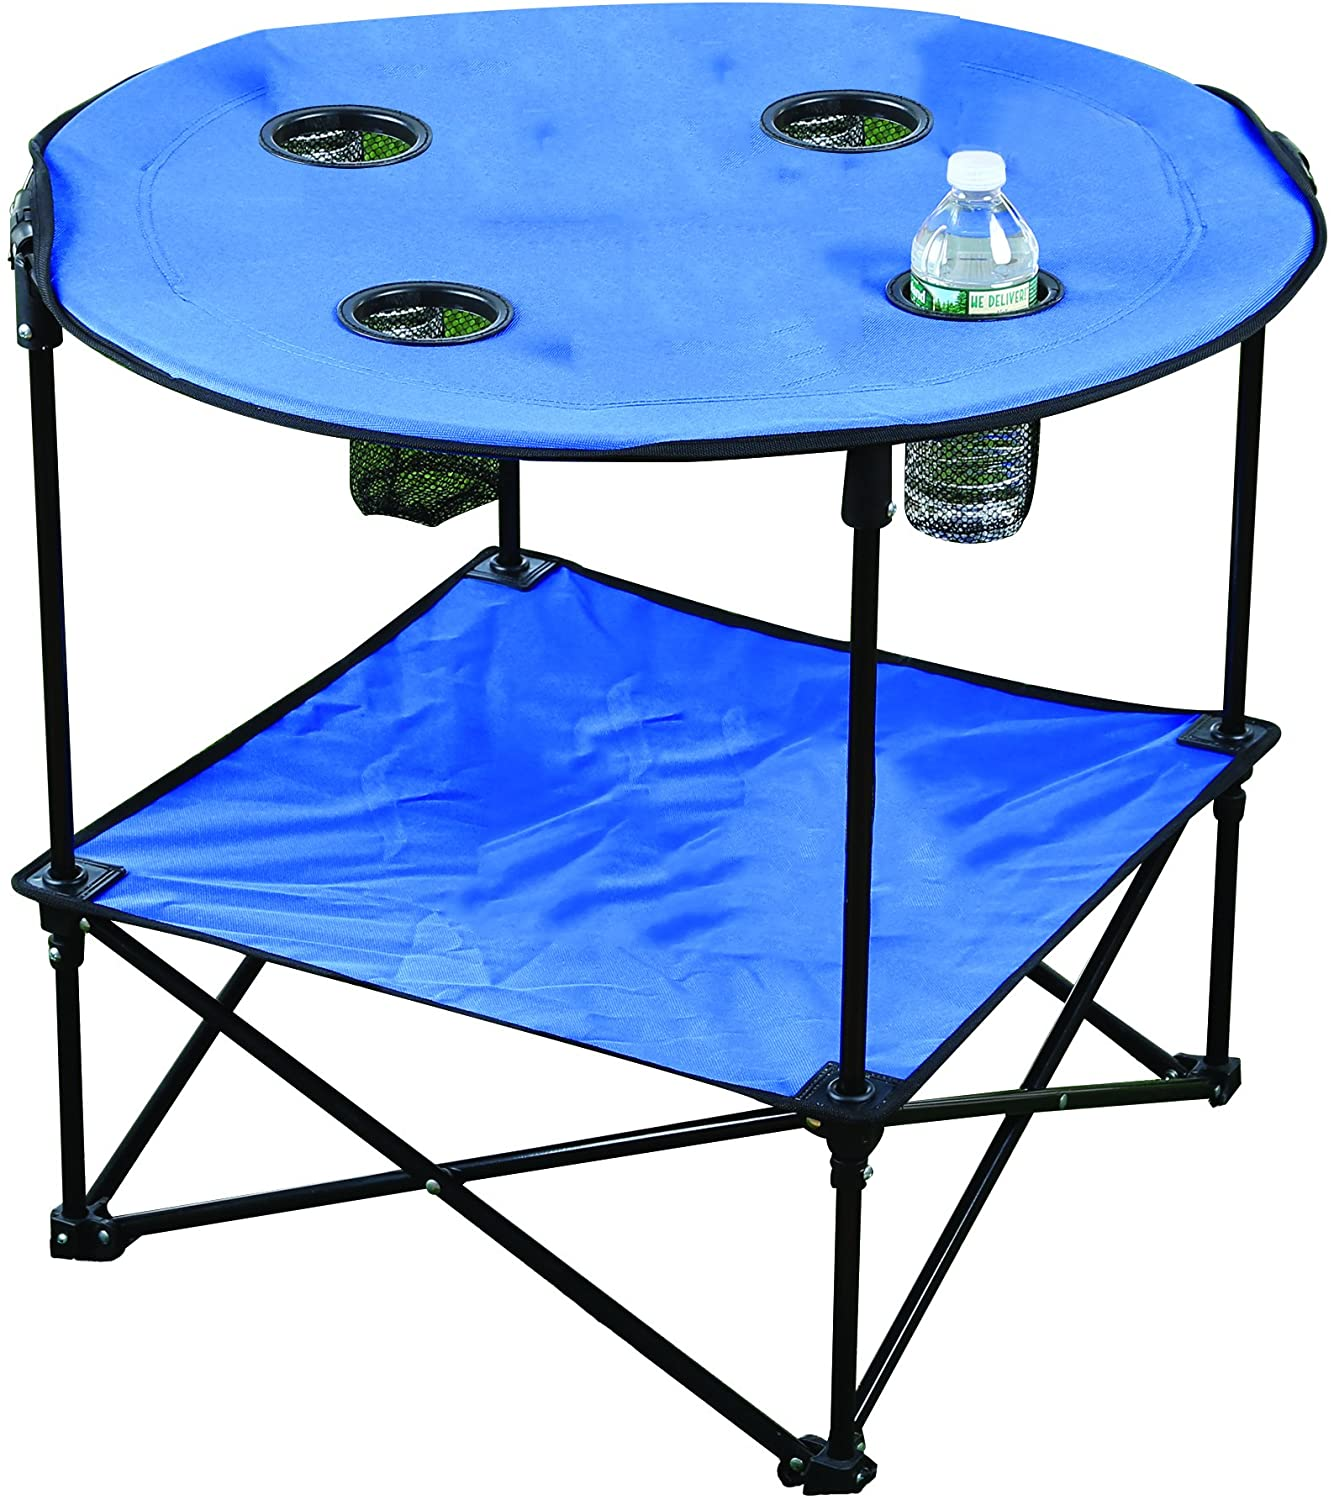 Portable Camping Side Table for Outdoor Picnic